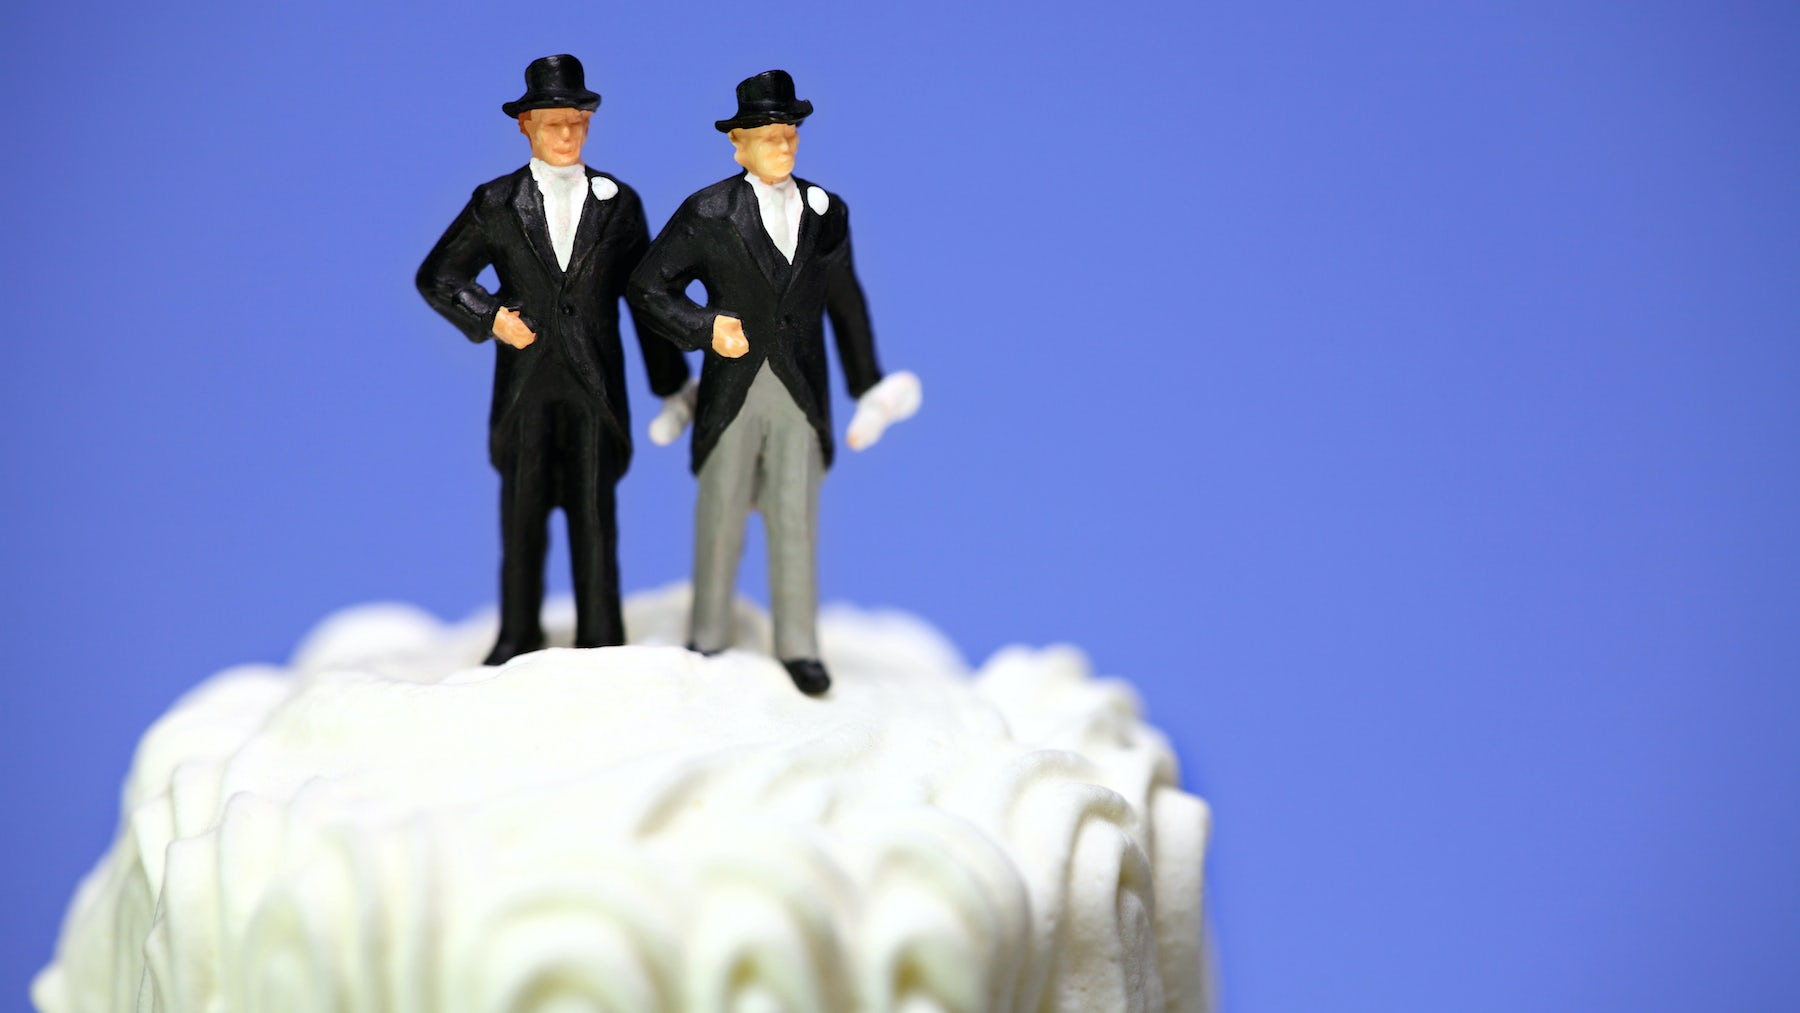 Same-sex wedding cake icing figures | Source: Shutterstock